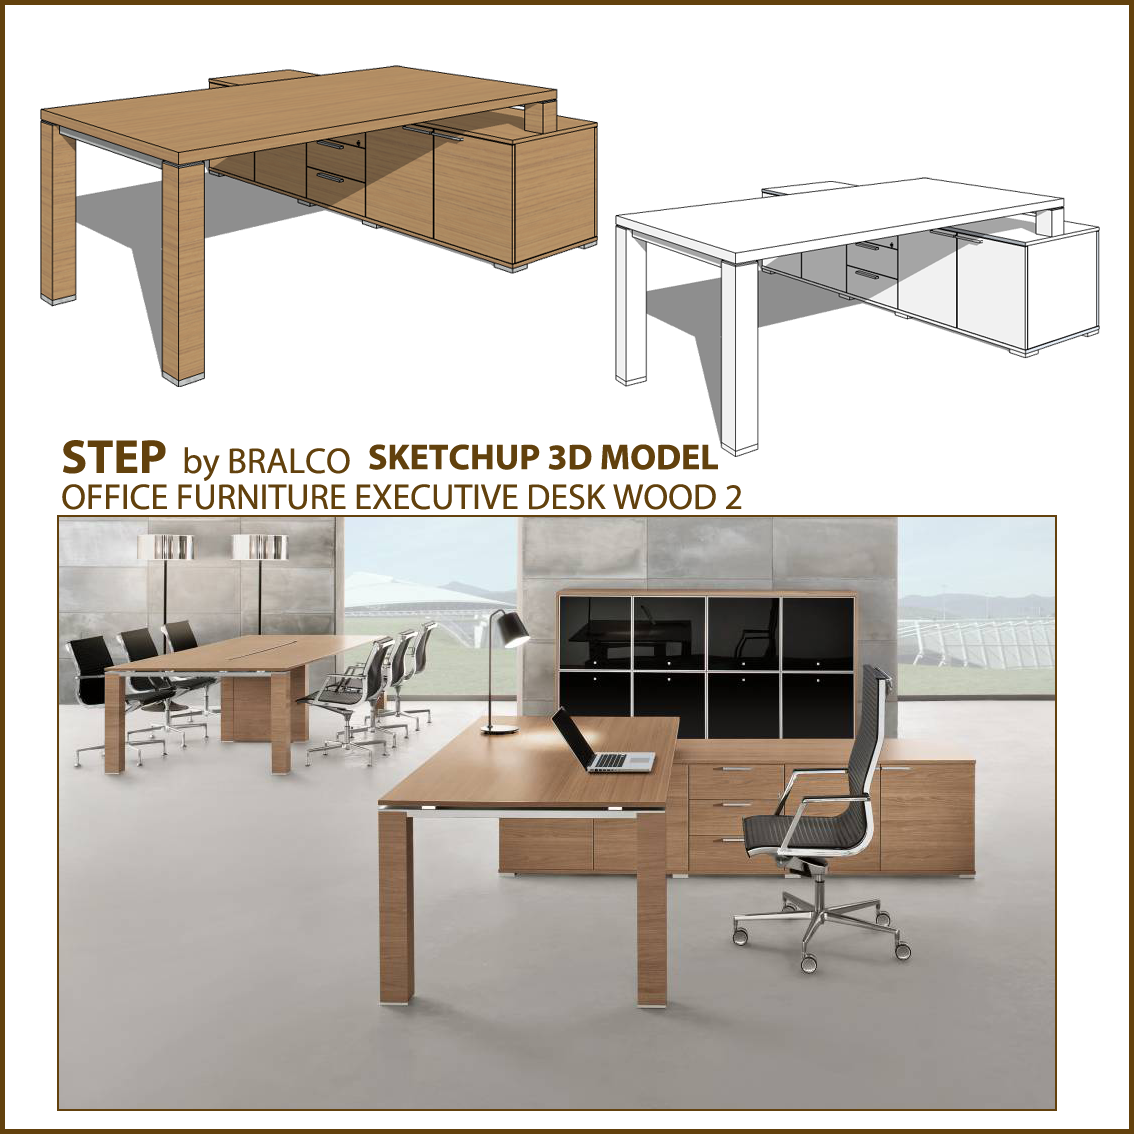 Free Sketchup 3d Model Office Wood Executive Desk Jet Tendance Et Style De Vie Pinterest Desks